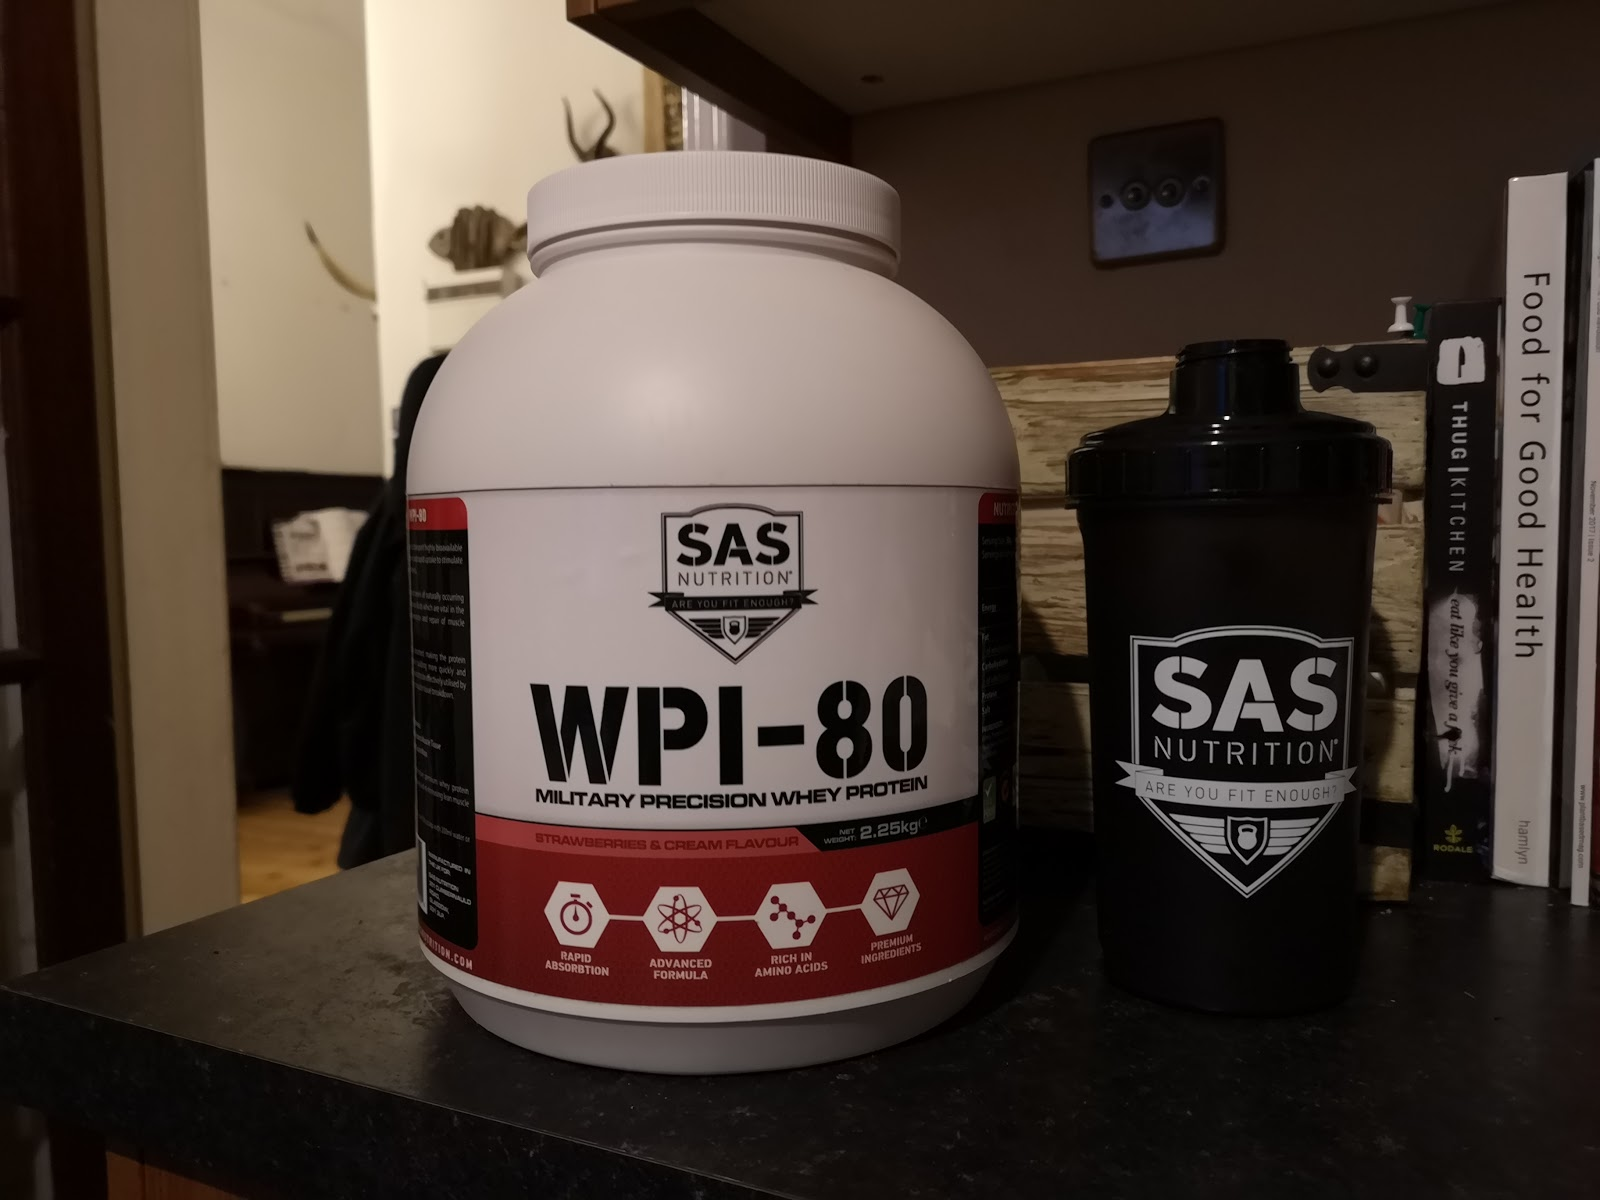 SAS Nutrition Protein Powder Review